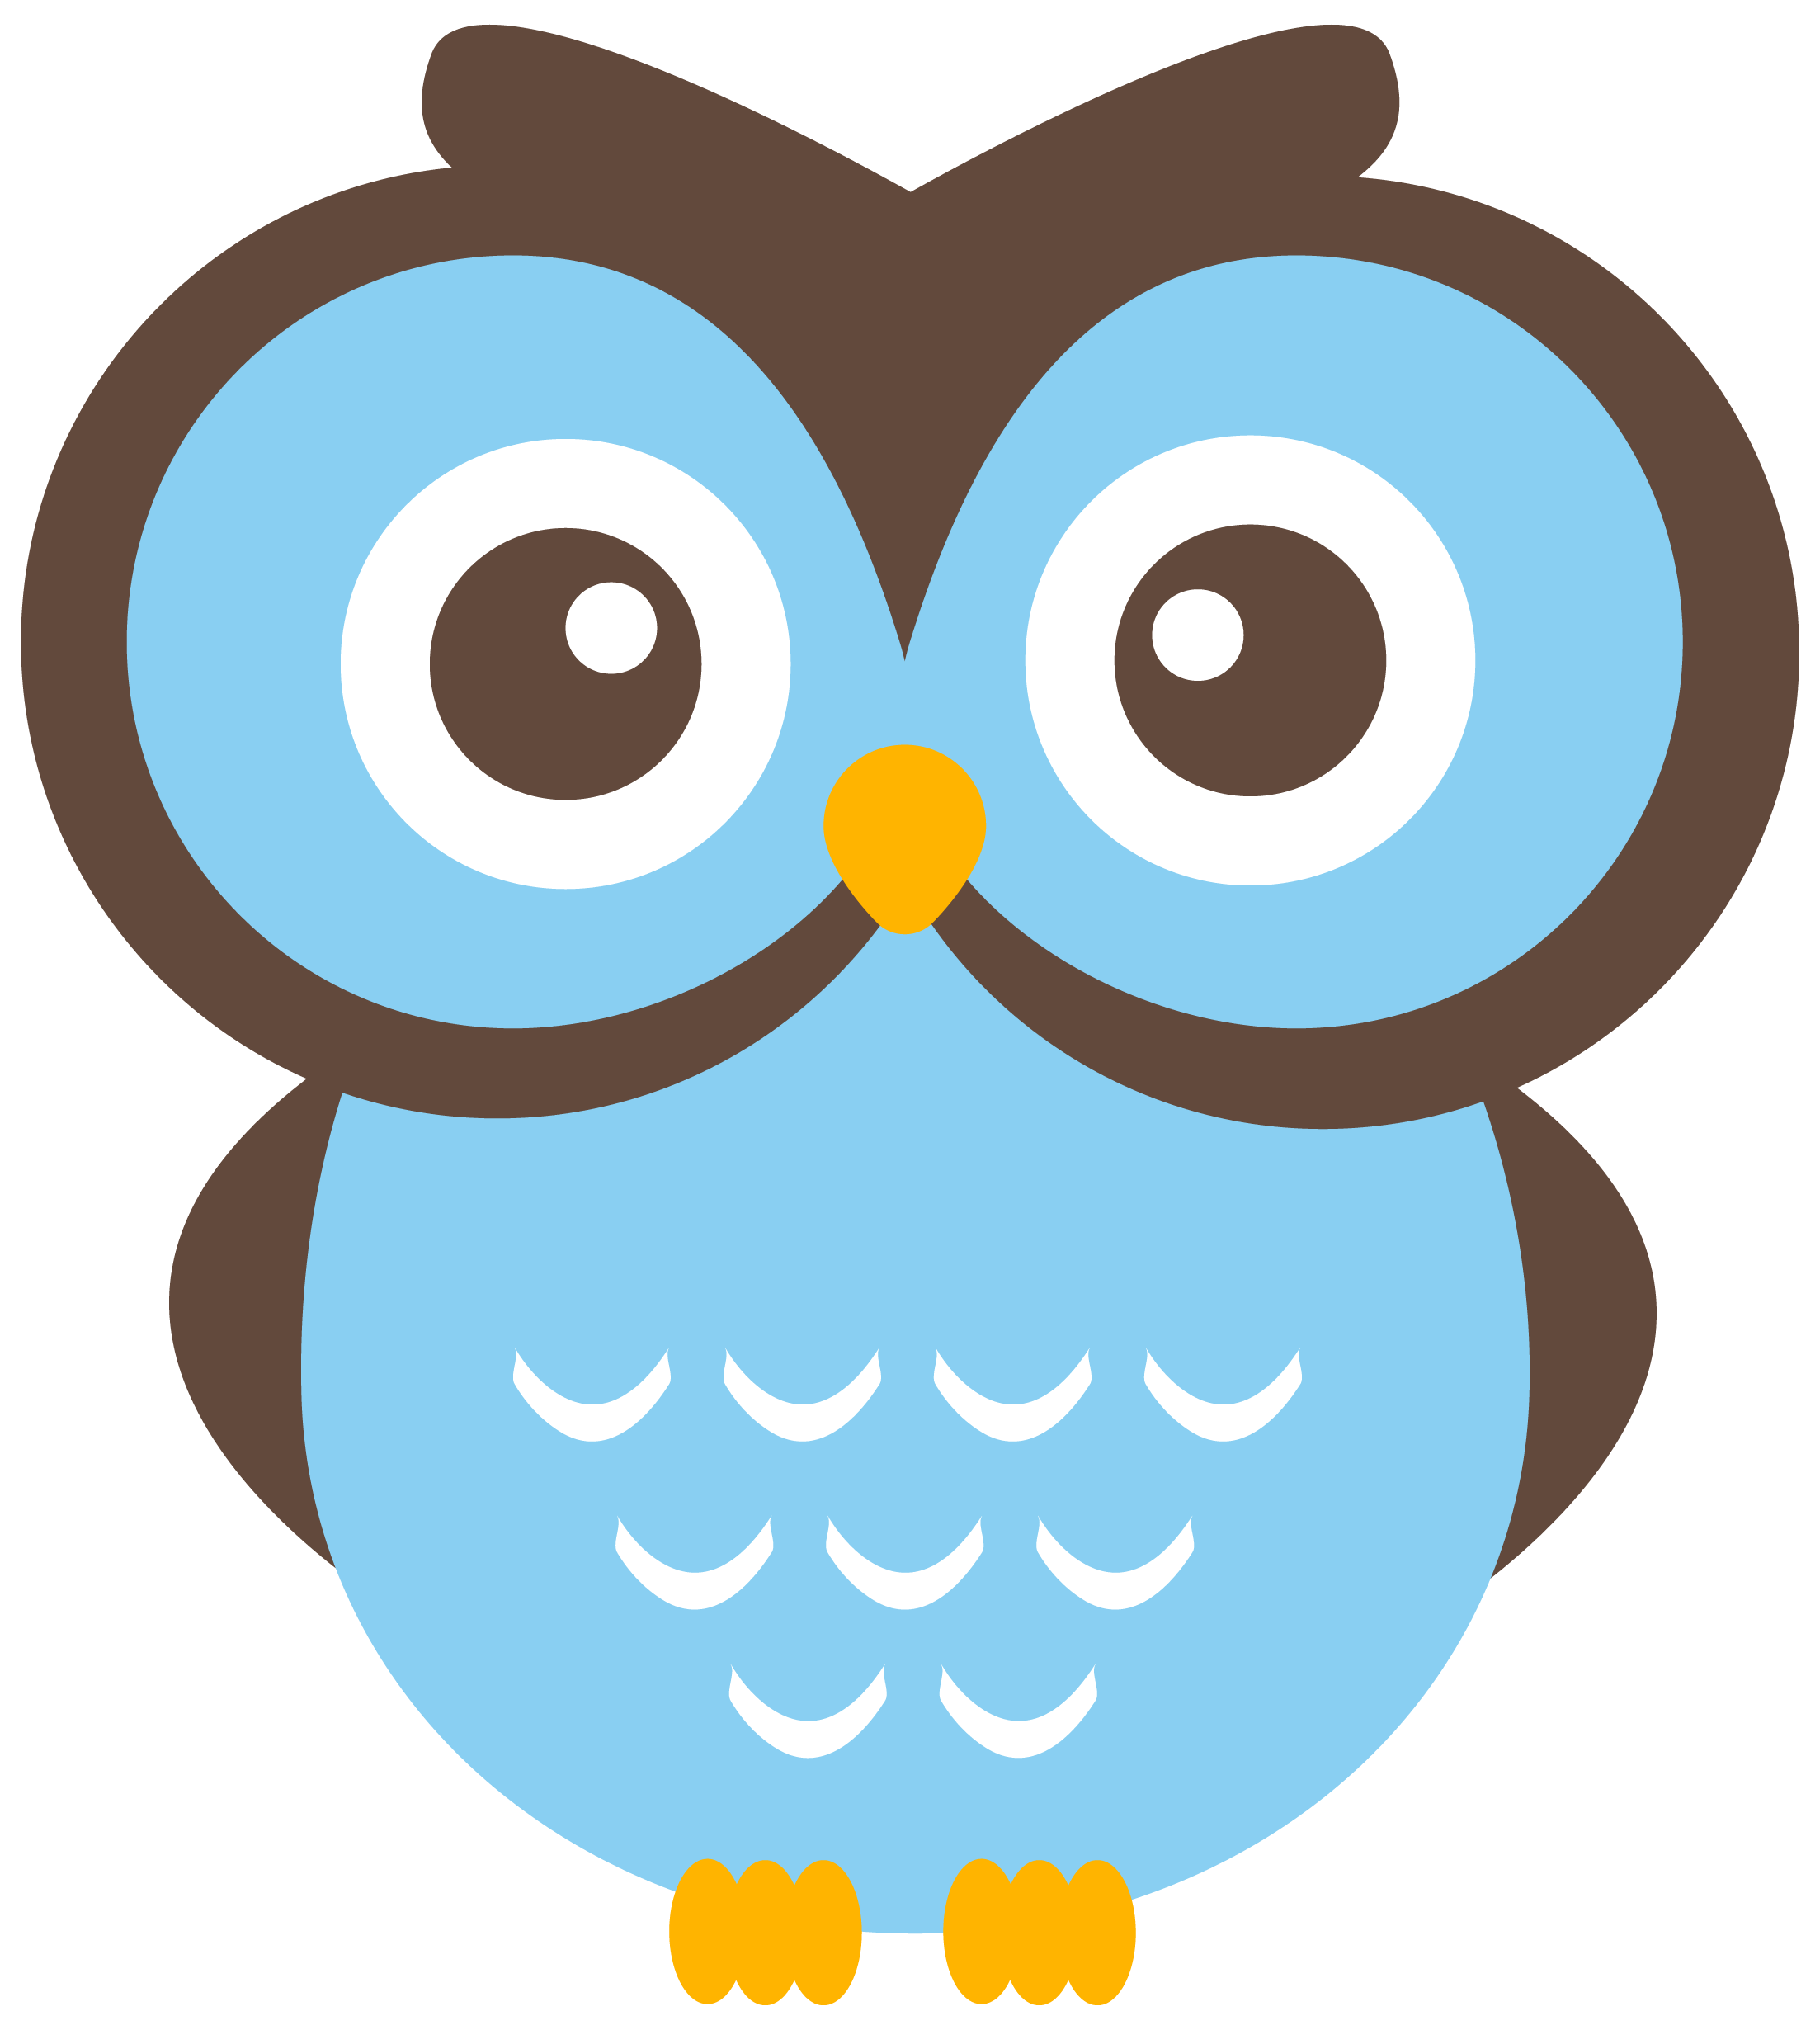 Png Images Of Owls - Owls on owl clip art owl and cartoon owls image